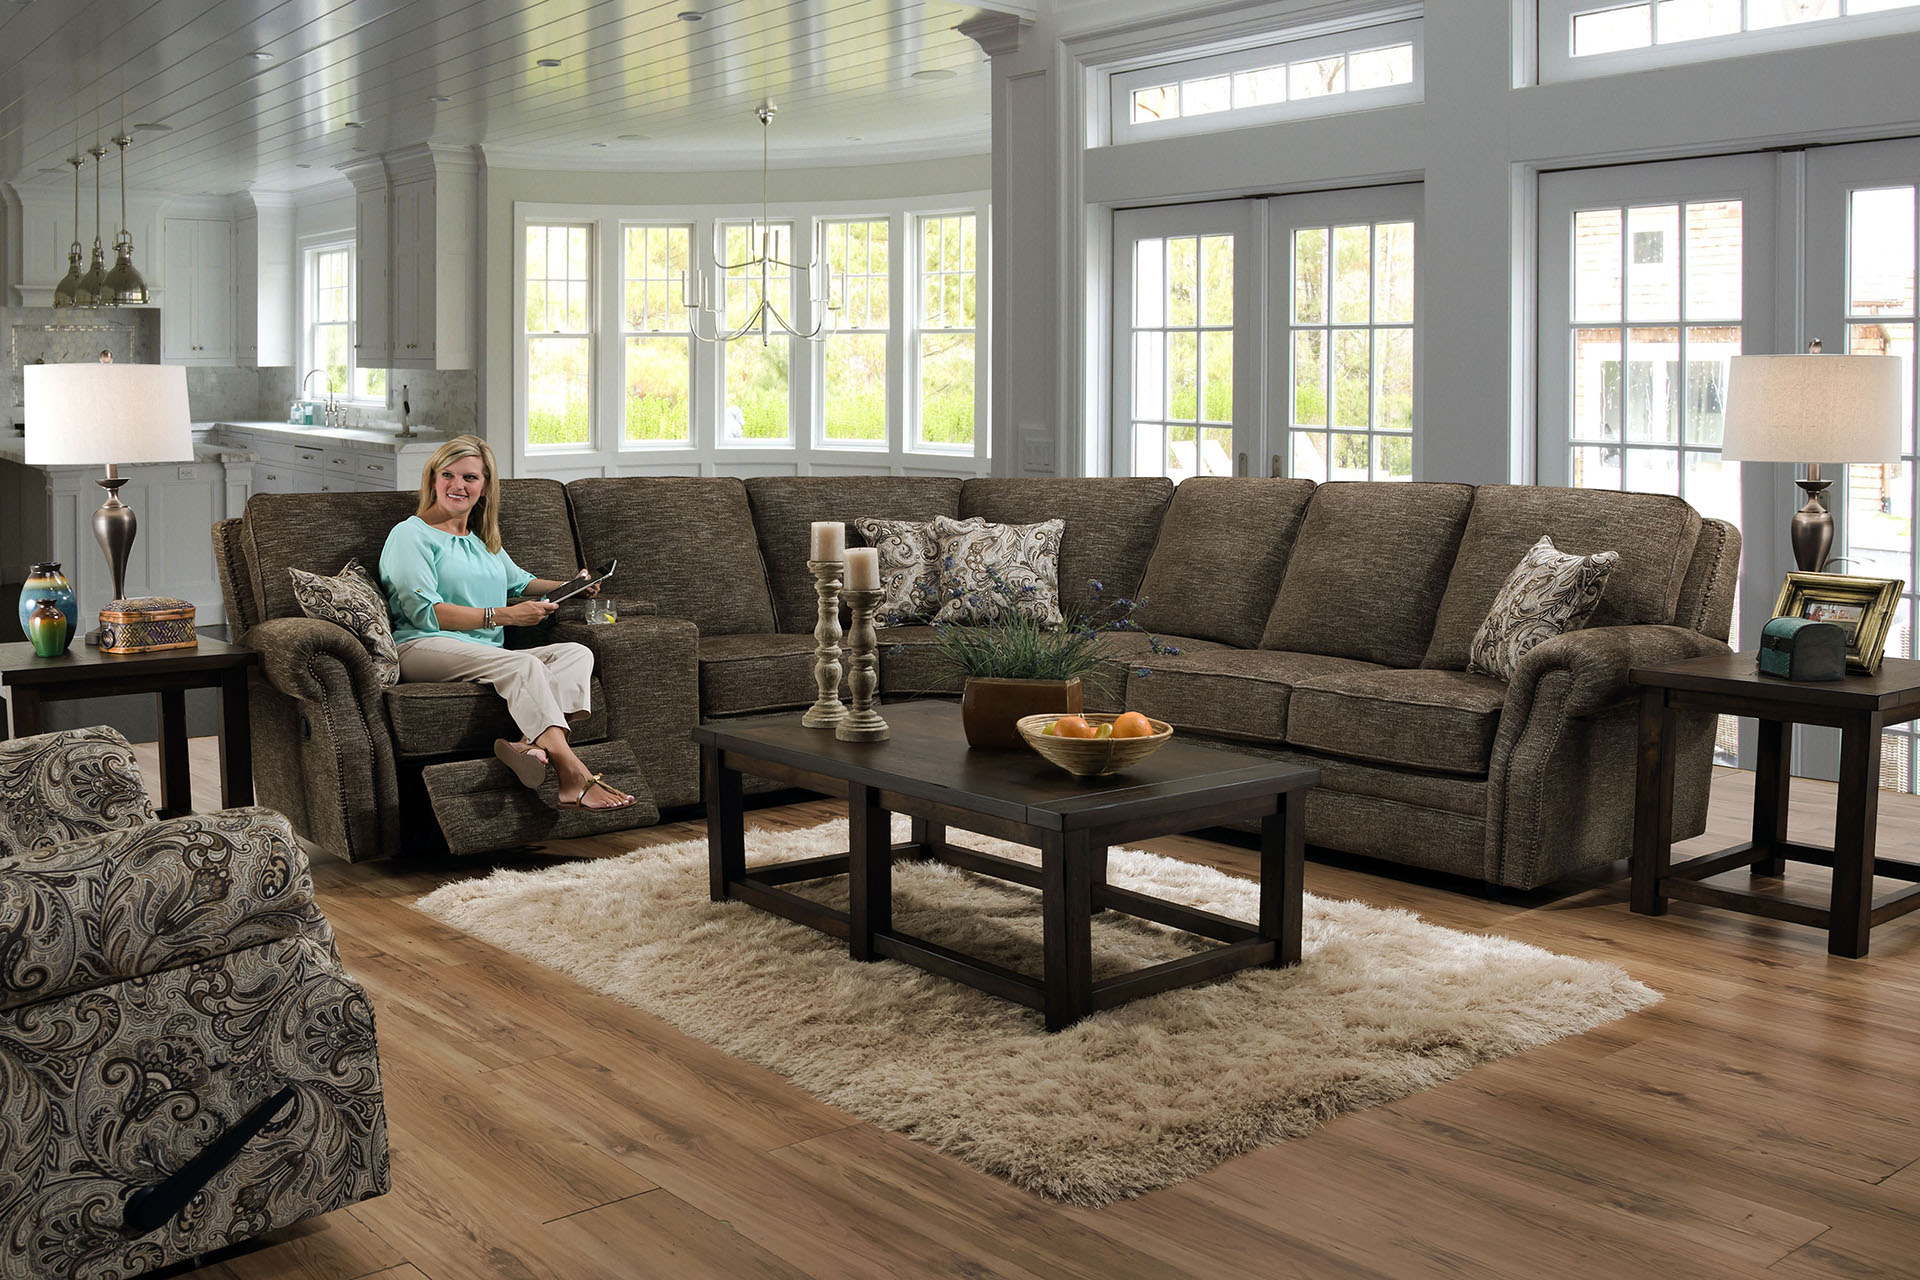 Specials Home Express Furniture We Are Your Trusted Choice For